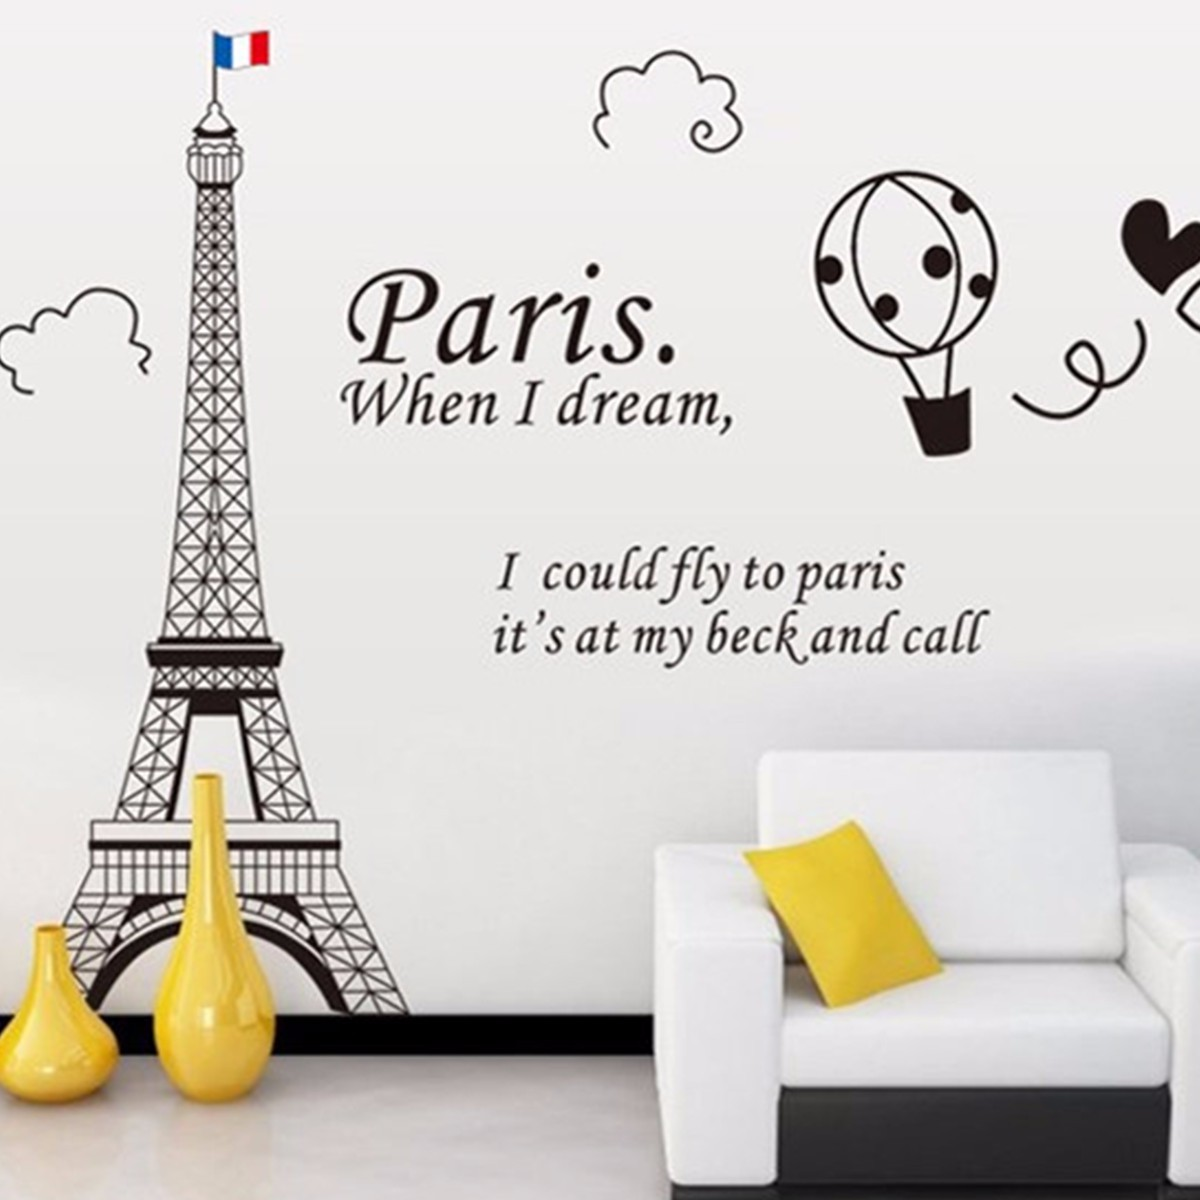 Eiffel tower wall decor mobile and retail wall sticker home decor removable paris eiffel tower wall sticker art decal mural diy decor home bedroom 60x90cm amipublicfo Images